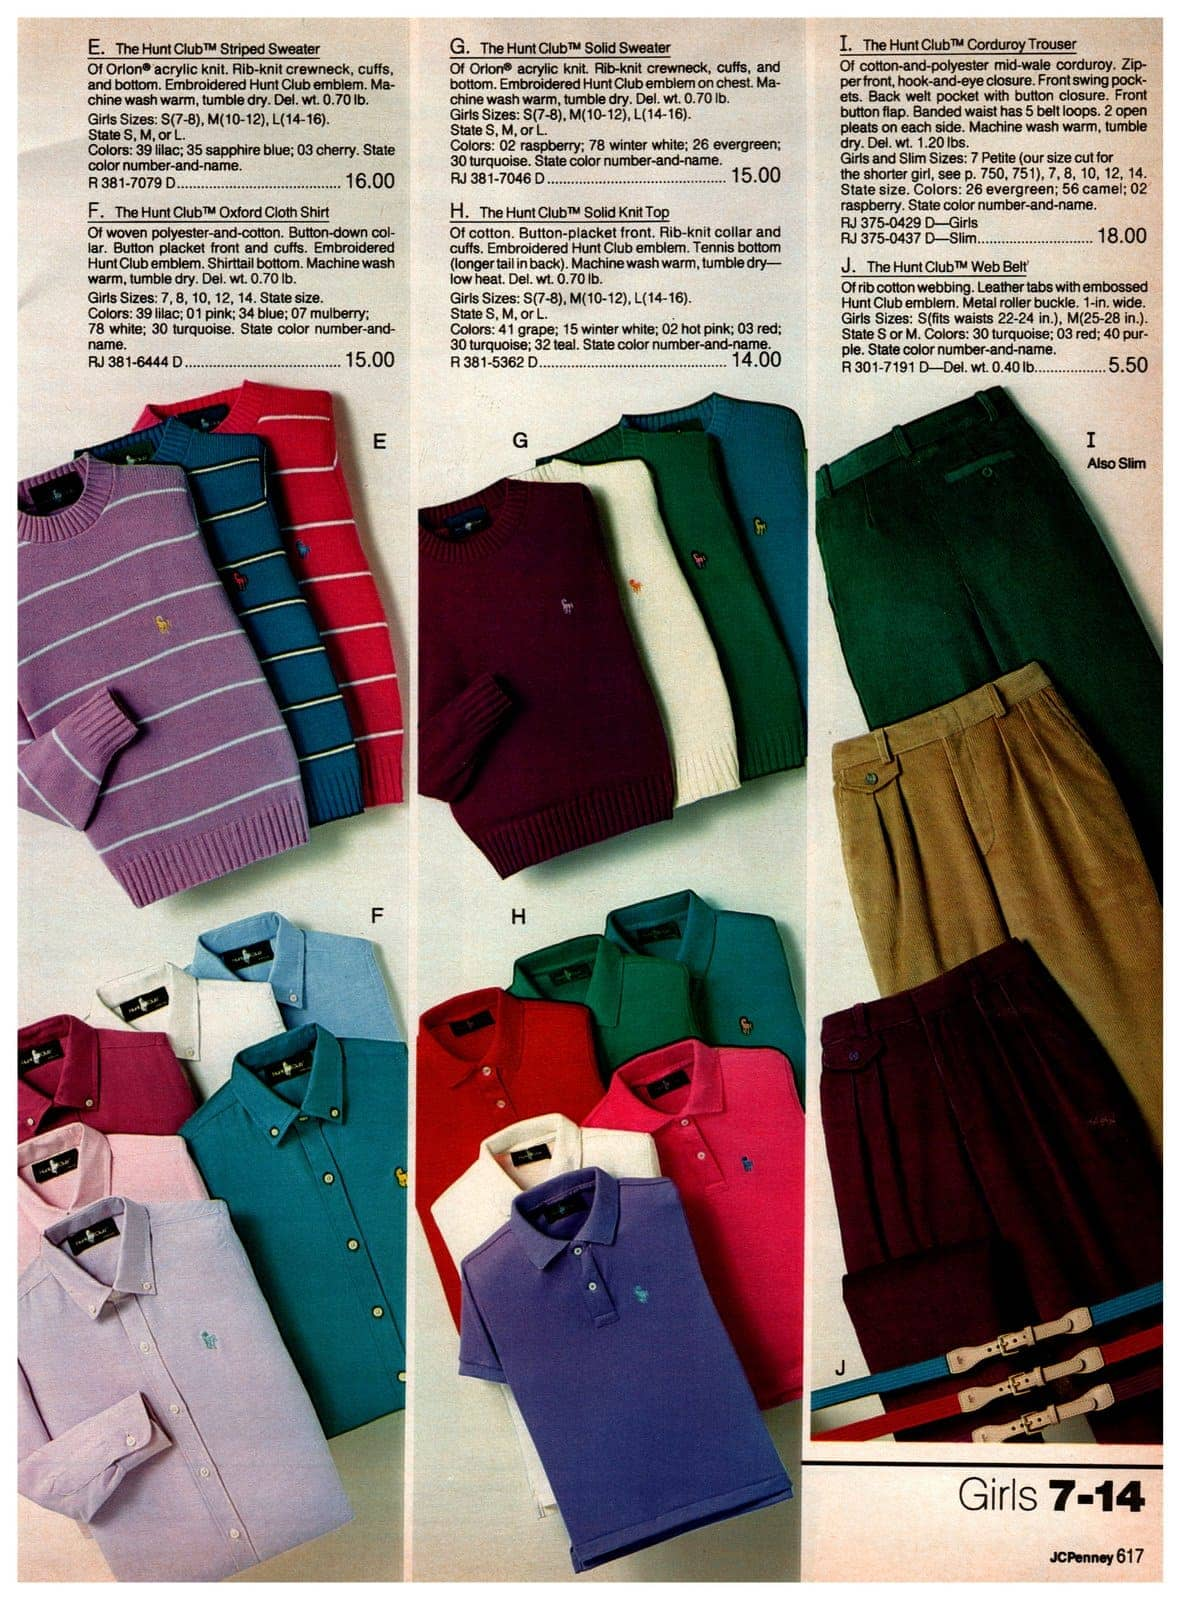 Striped sweaters, Hunt Club Oxford cloth shirts, knit tops, corduroy trousers and web belts